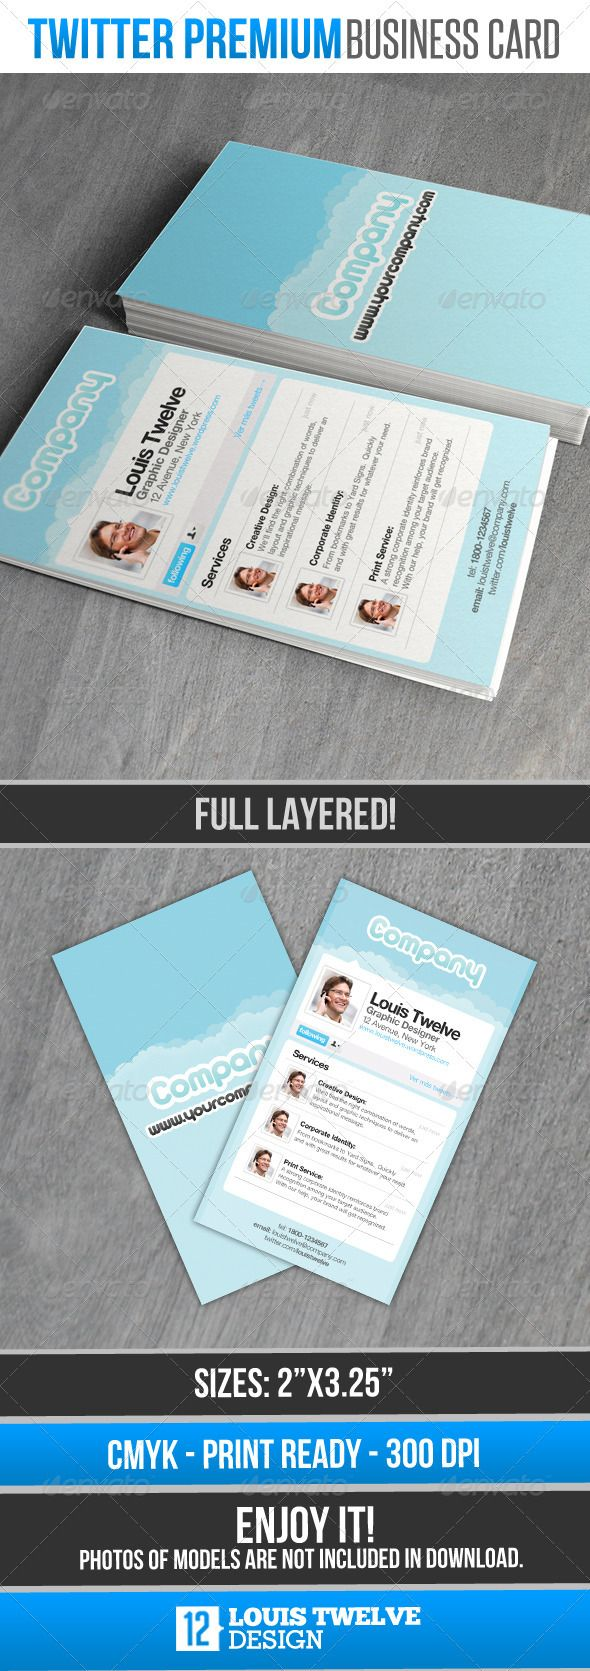 Twitter Premium - Card Business | Business, Business cards and ...